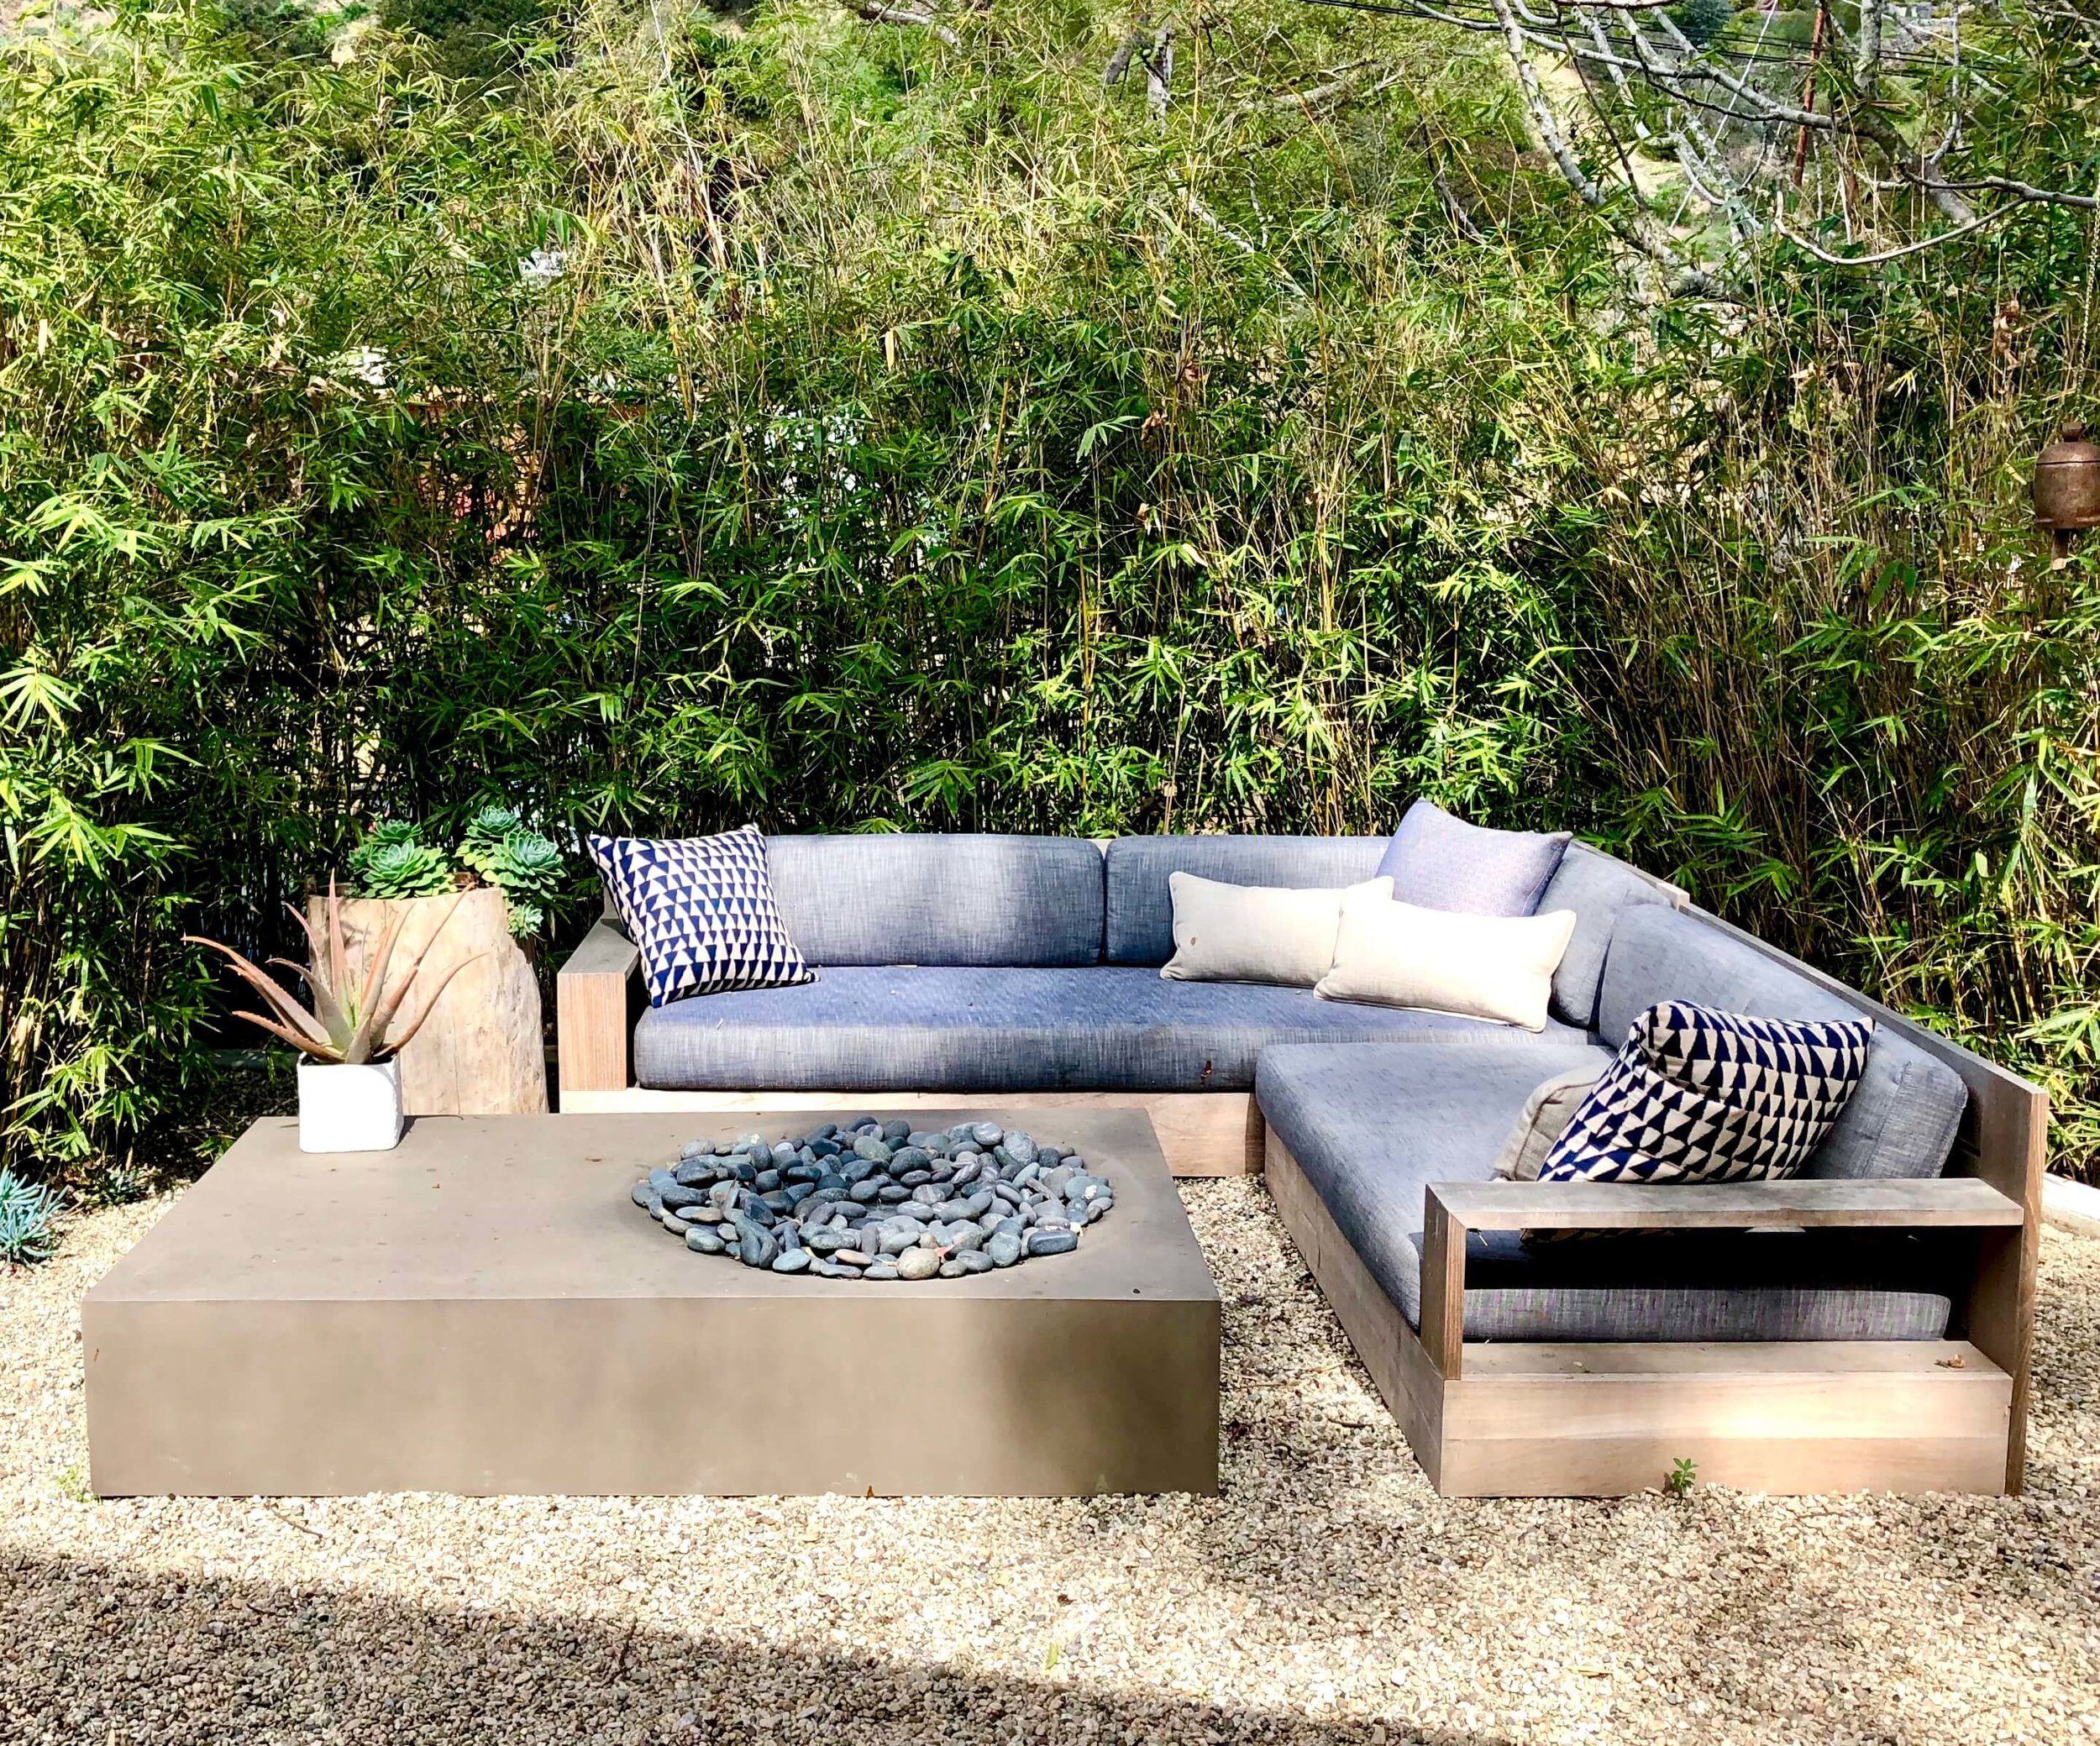 Outdoor living sectional with firepit coffee table seen at Dwell on Design home tour #outdoorliving #outdoorseating